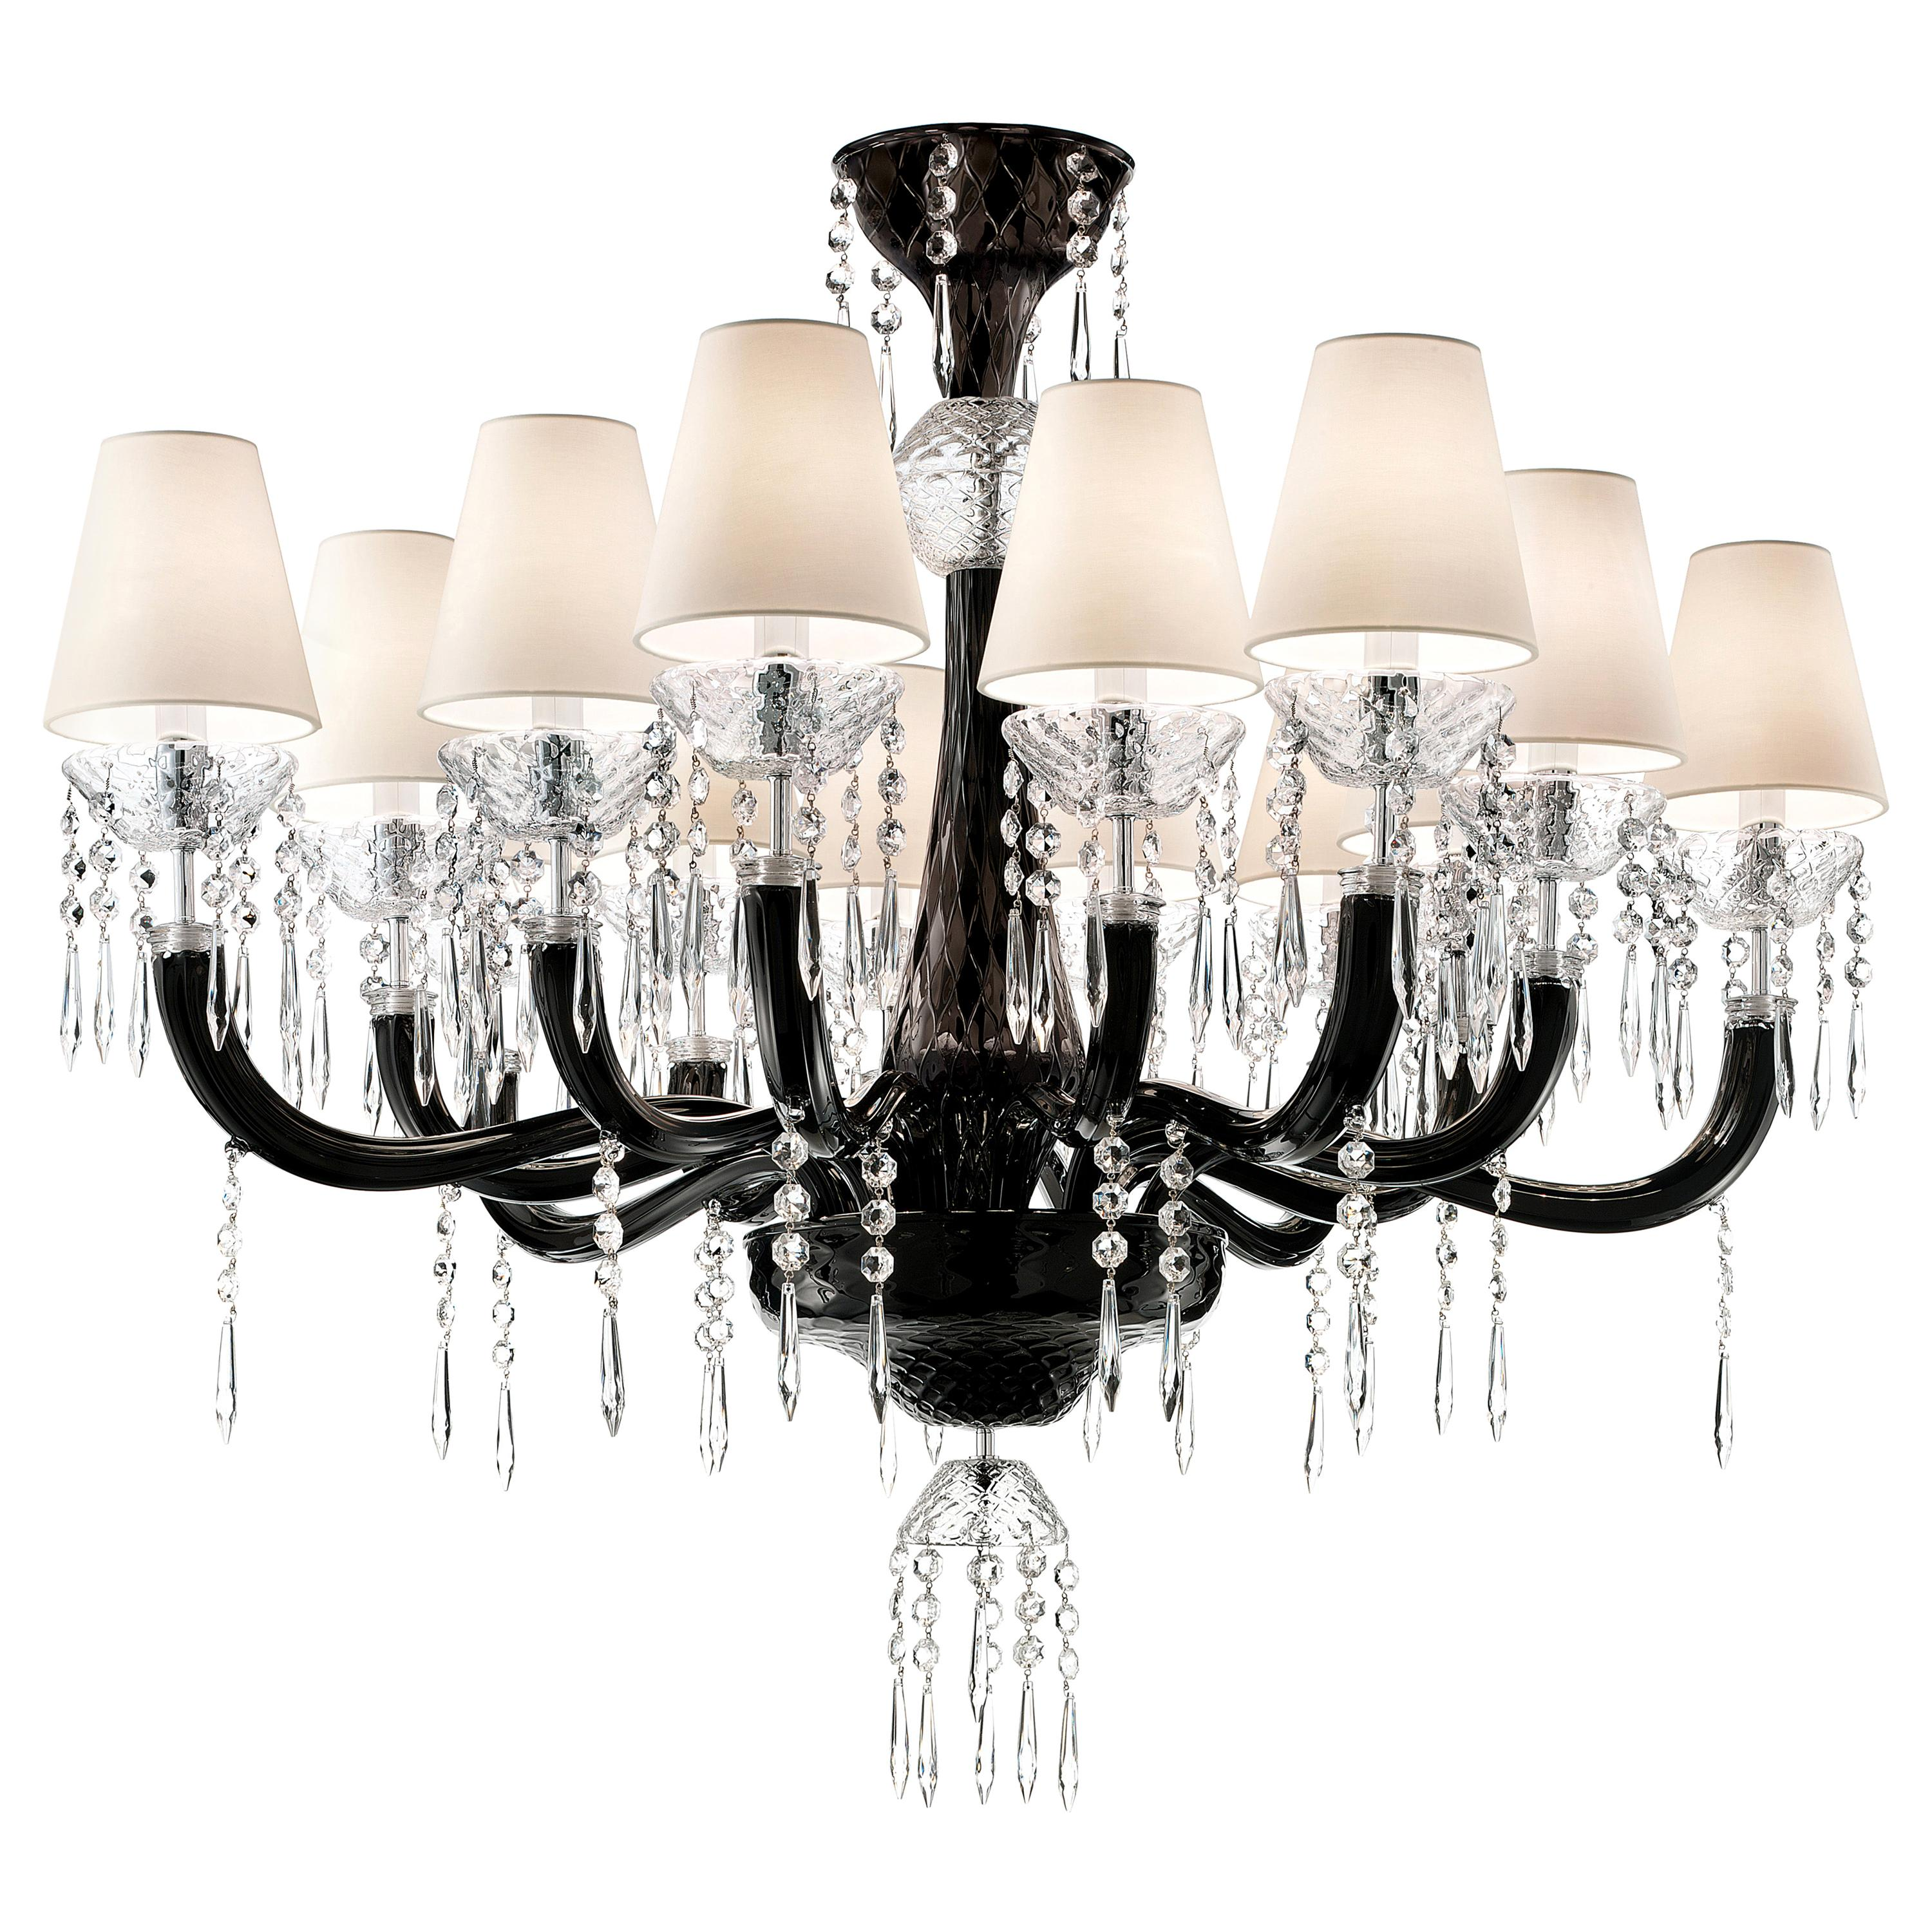 President 5695 14 Chandelier in Glass with White Shade, by Barovier & Toso